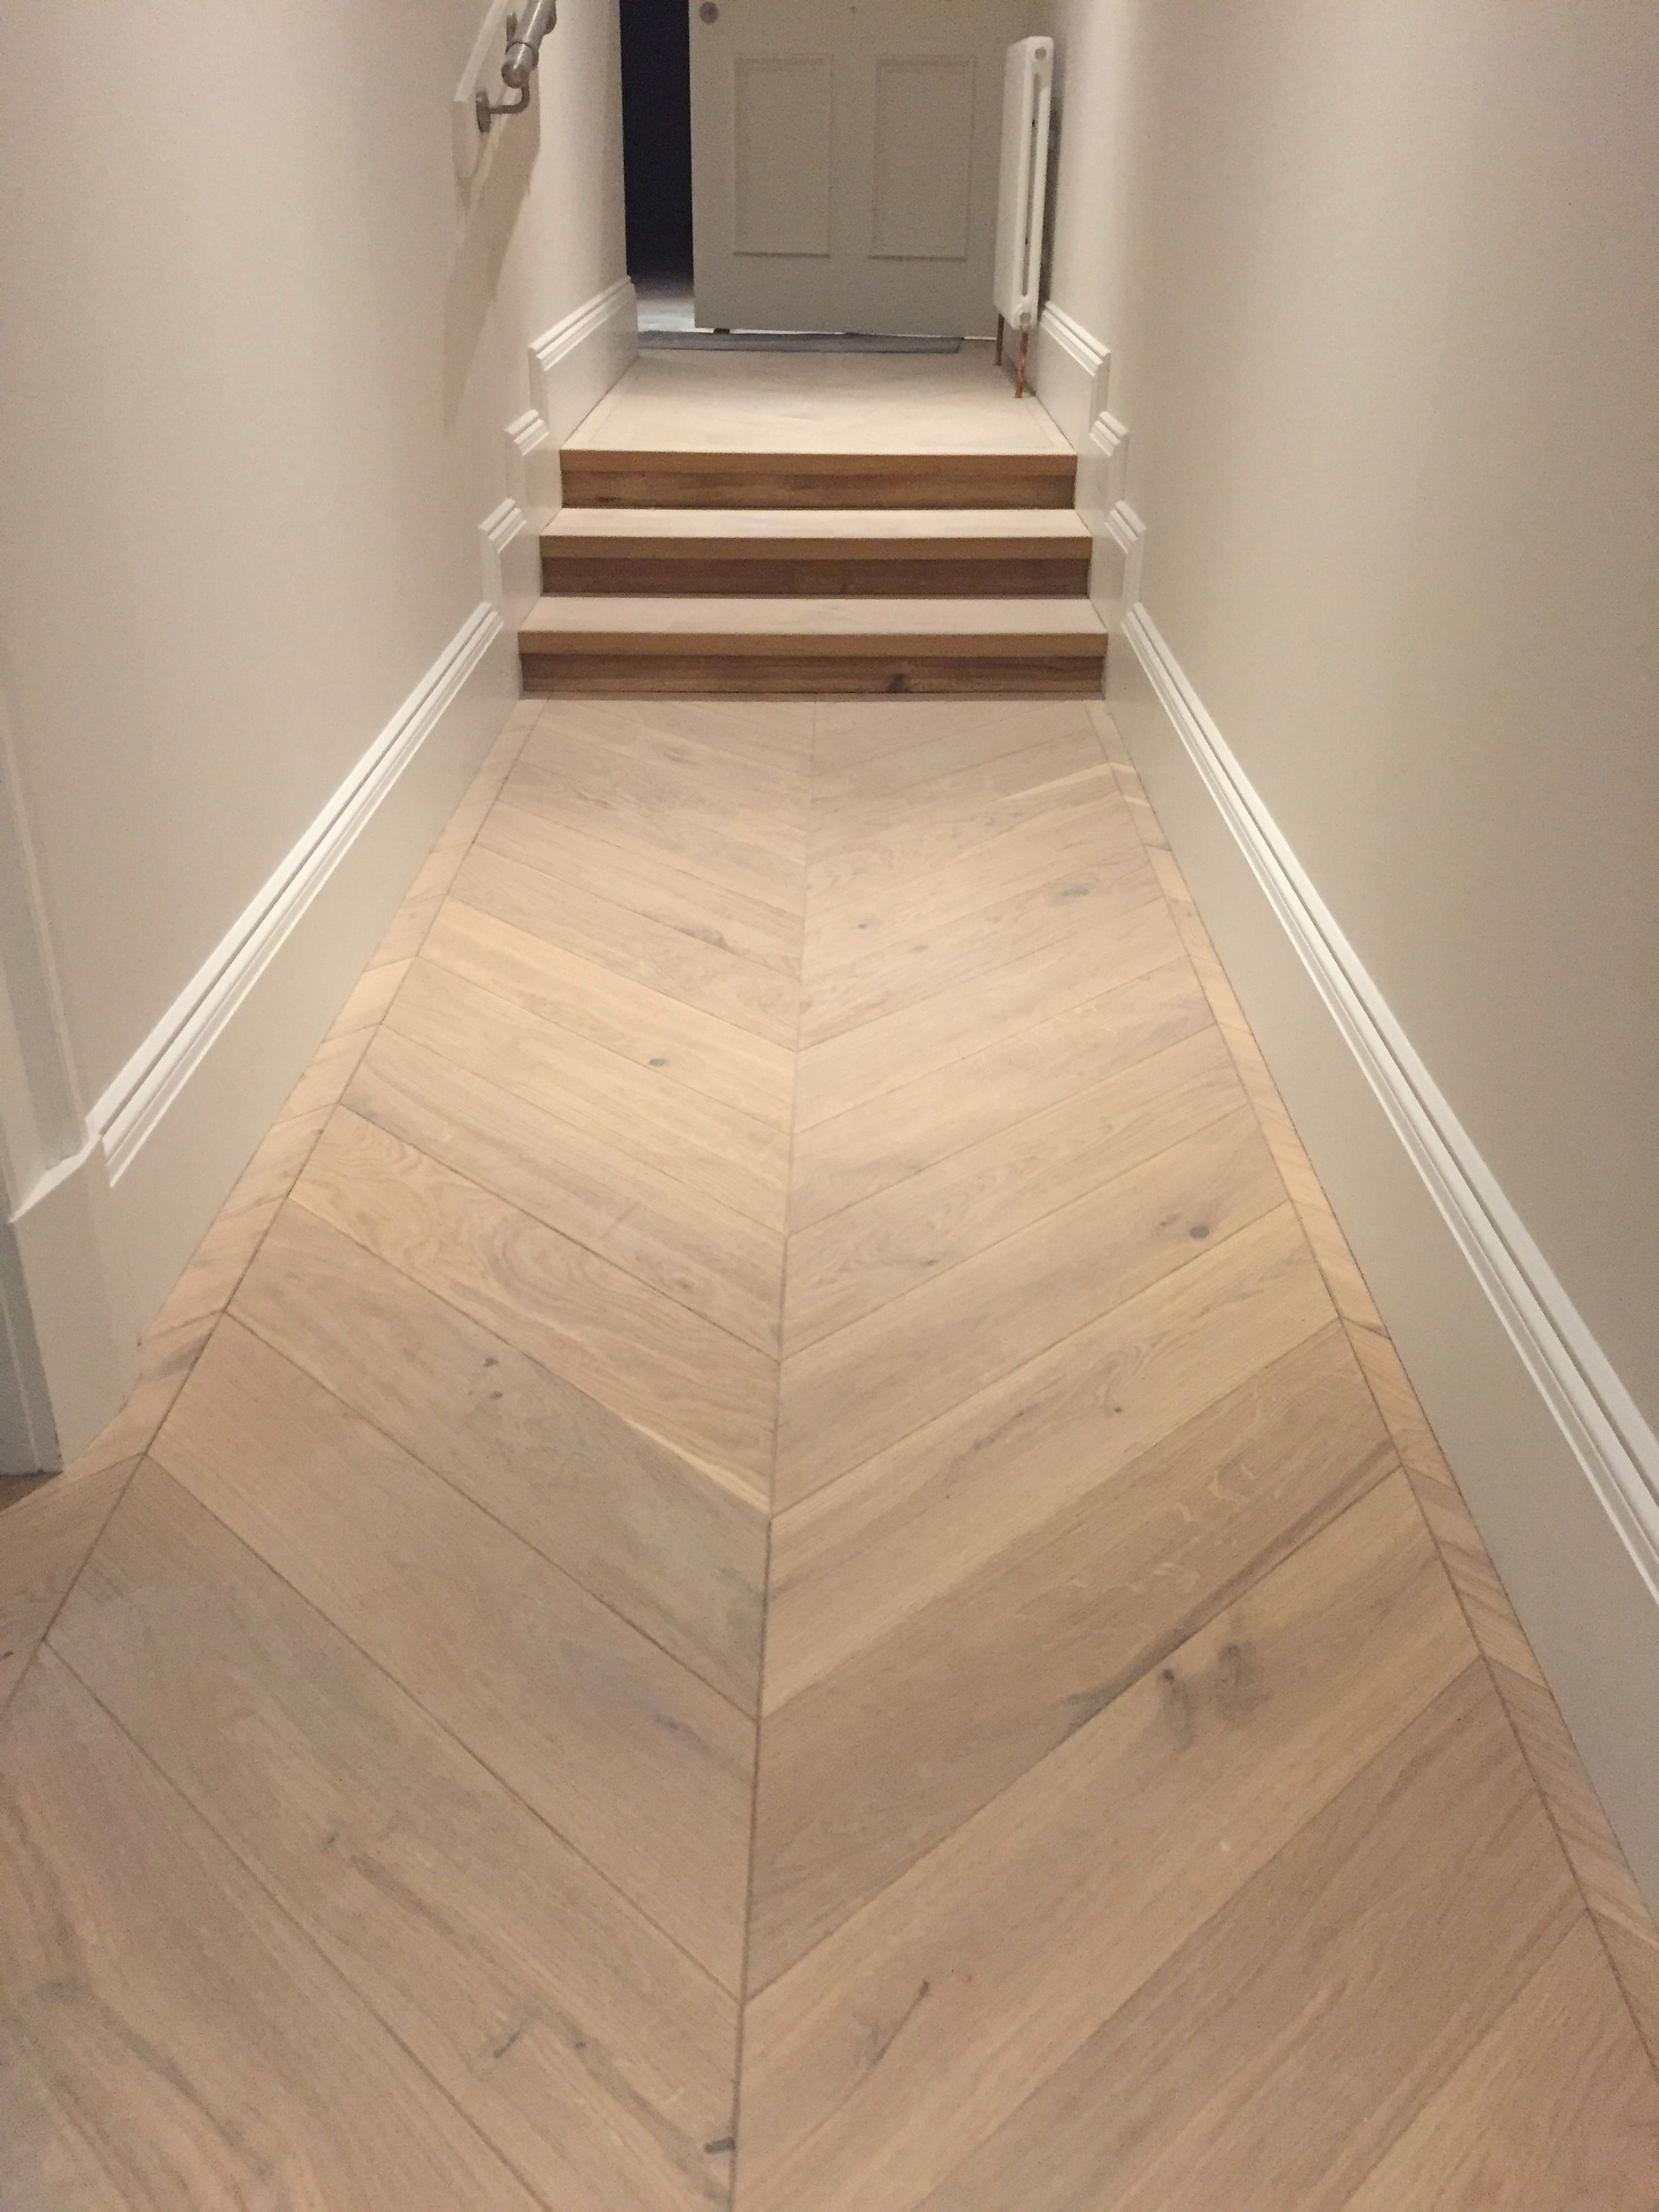 floors affect a ways can problems moisture blog with needs that preventing floor your hardwood fit humidity choose lauzon will flooring good engineered quality